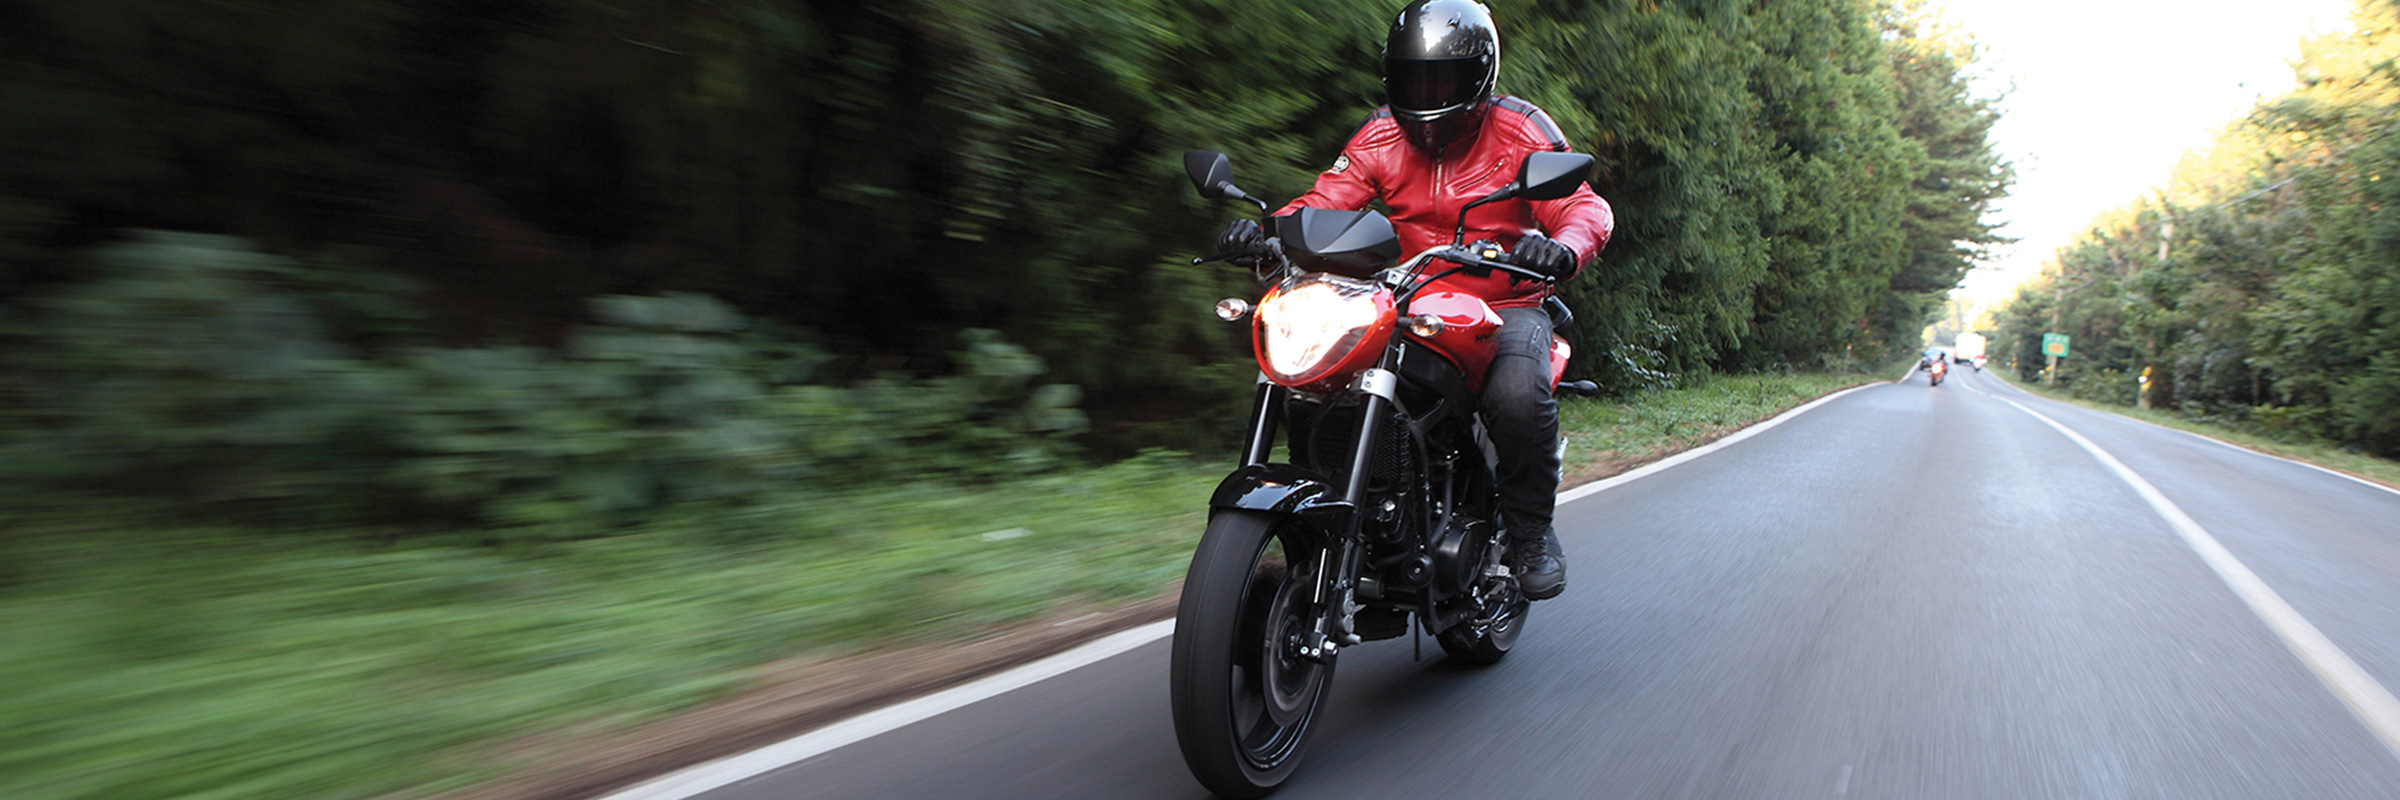 Hyosung GT125 - the In-Credible Alternative Lightweight Naked Bike